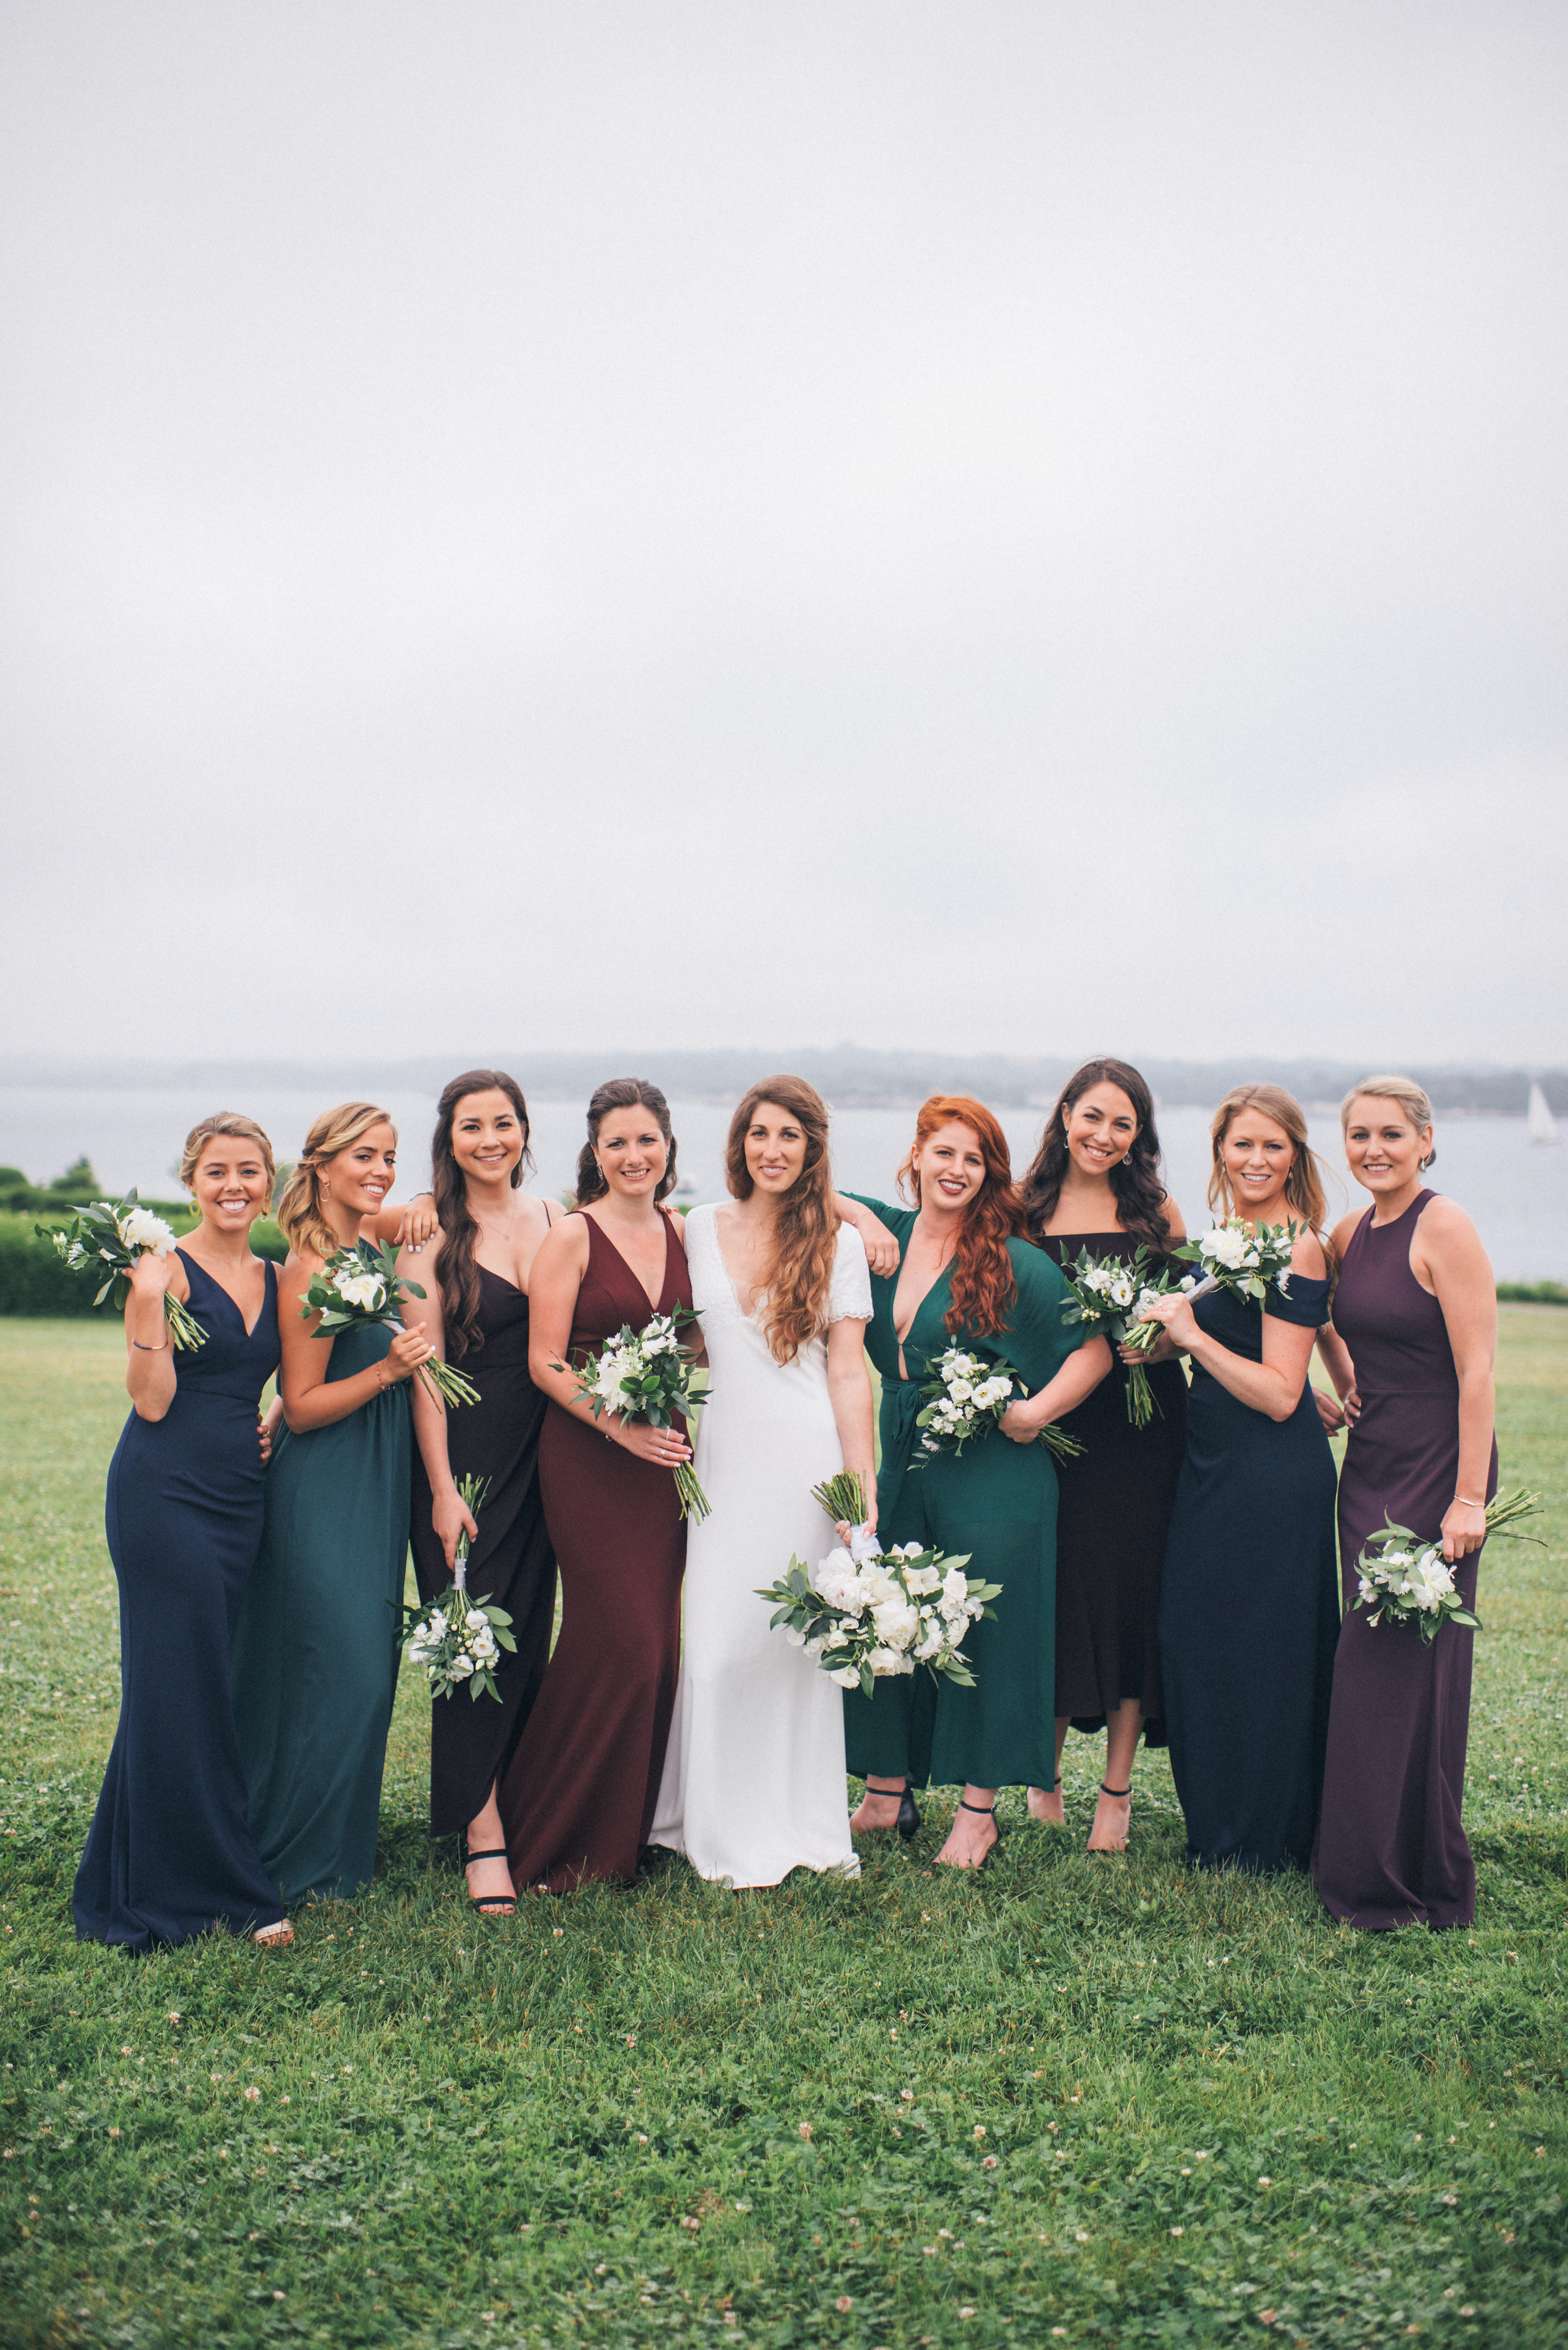 bride and bridemaids pose lakeside backdrop red green dresses